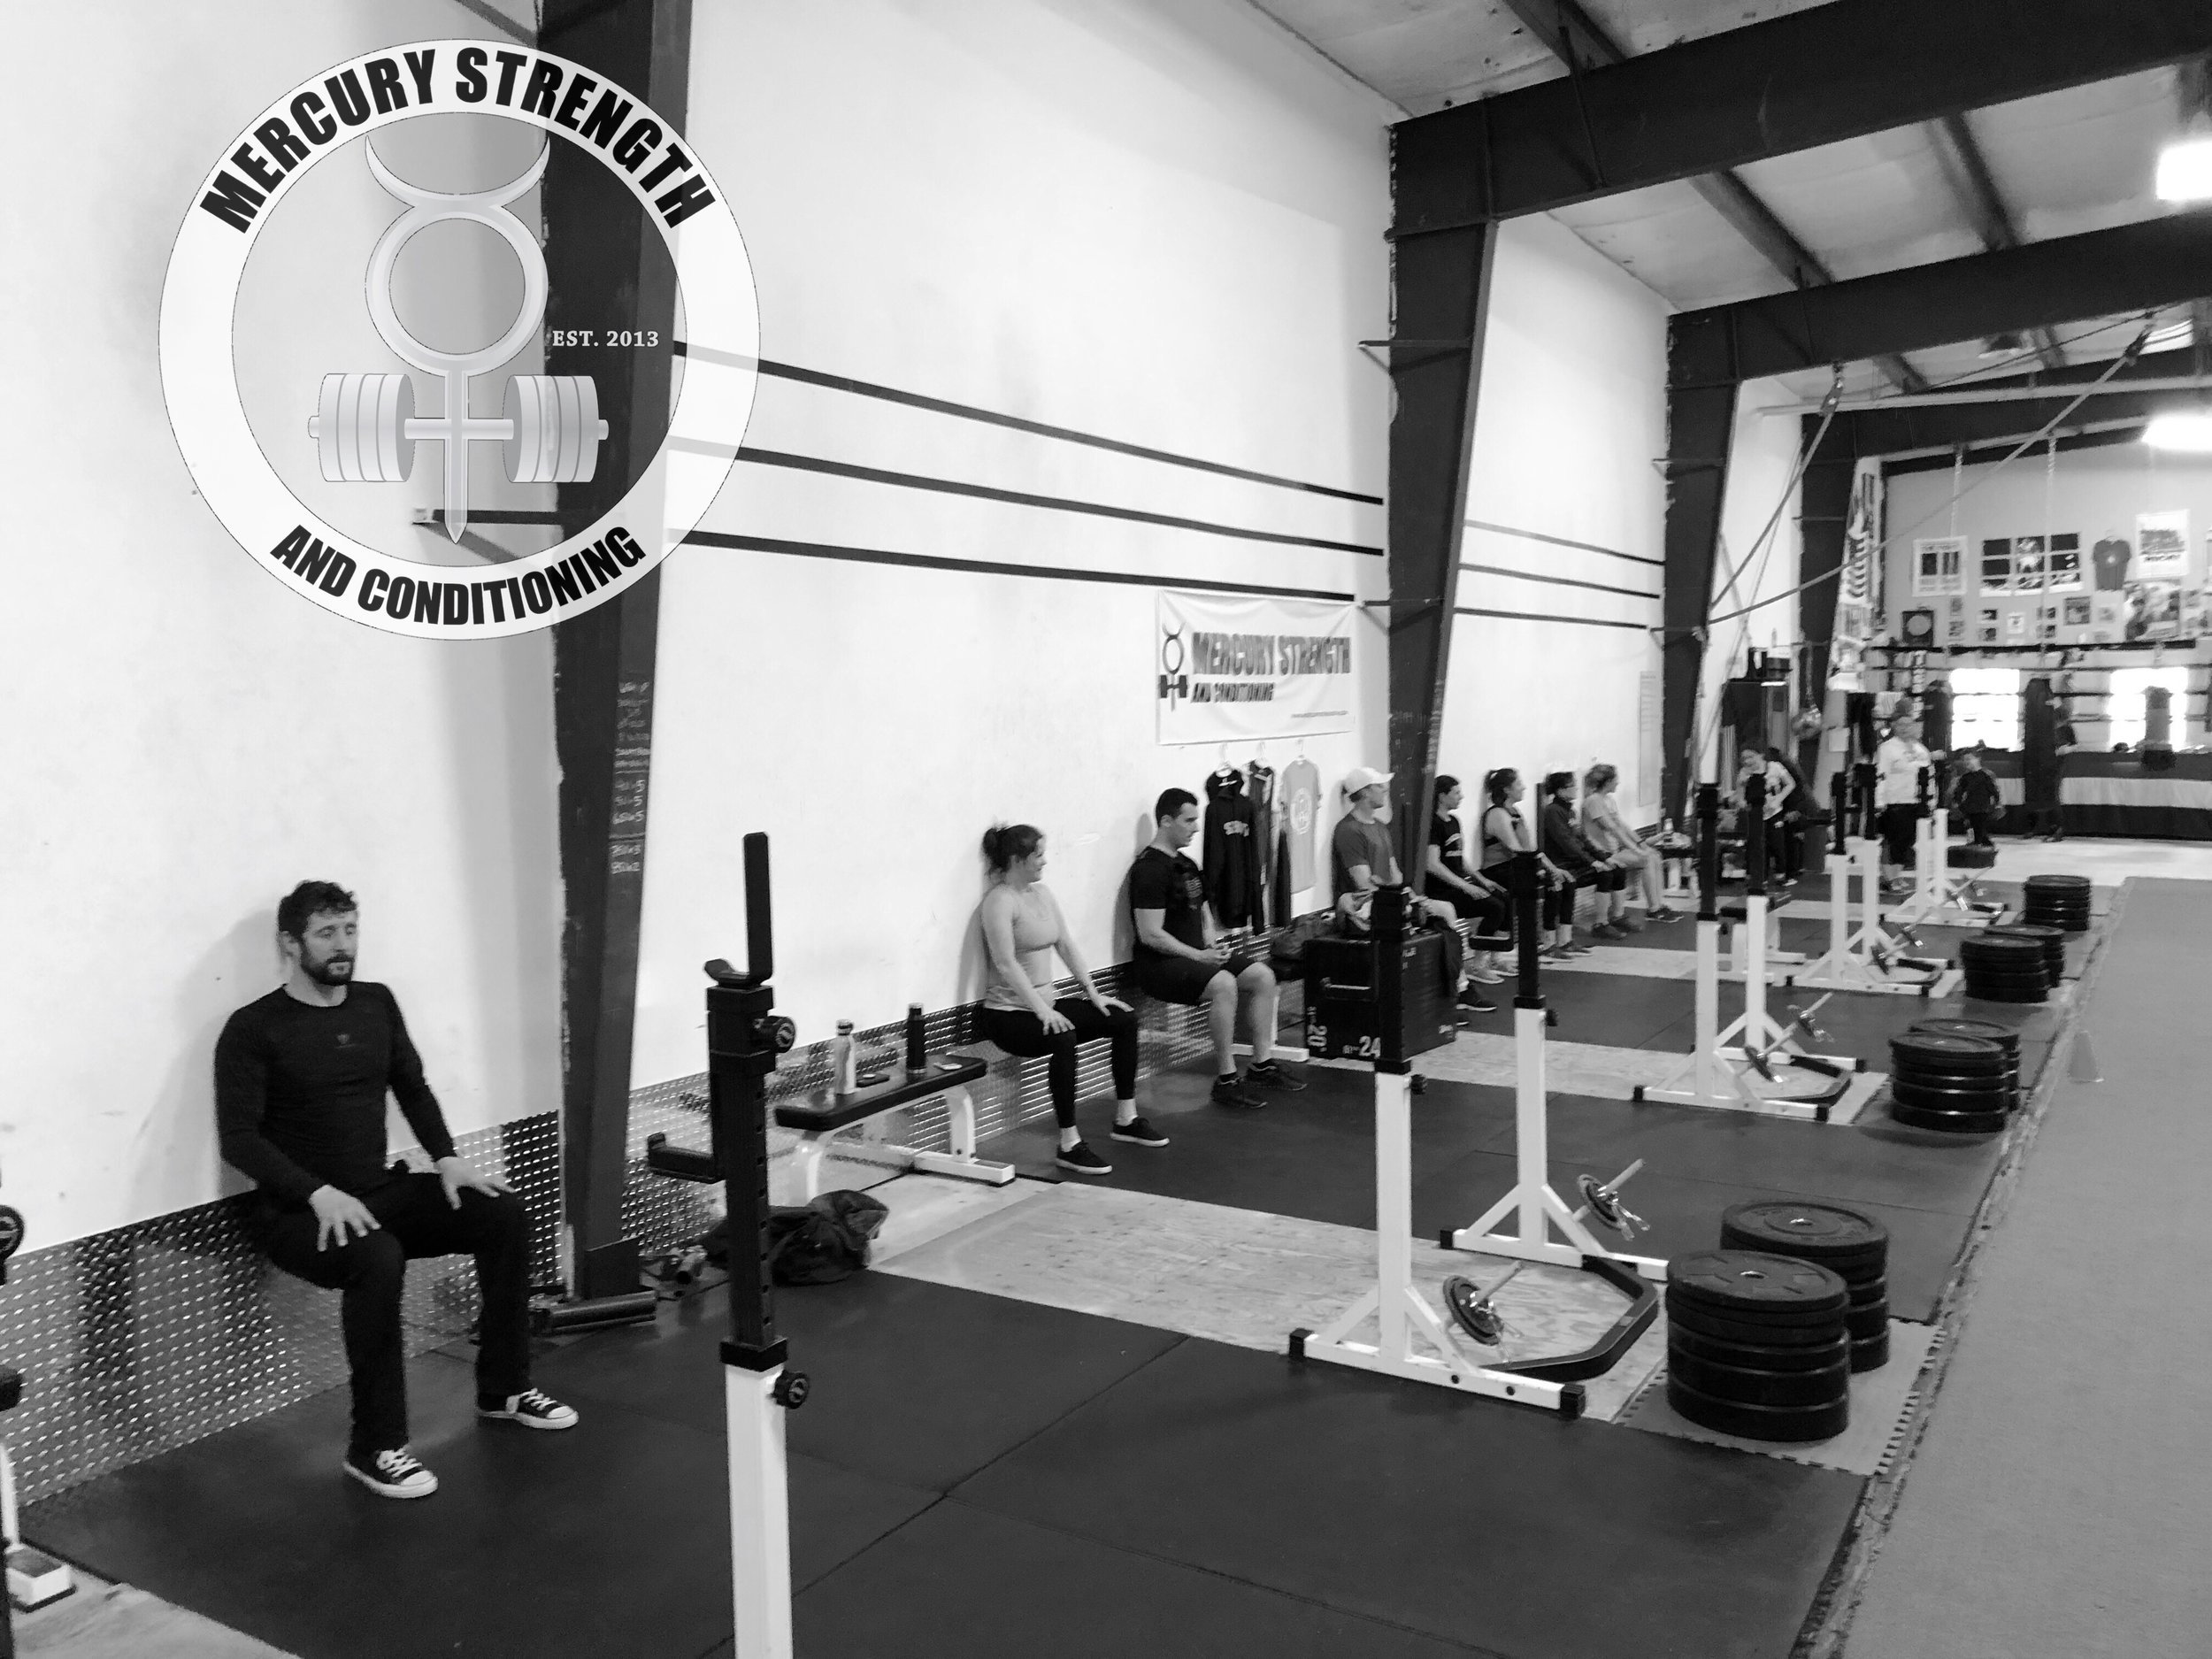 Gym-powerlifting-Olympic lifting-fitness-personal training-training-bootcamp-crossfit-kingston-kingston gym-kids-mercury-strength-conditioning-athlete-wall sit